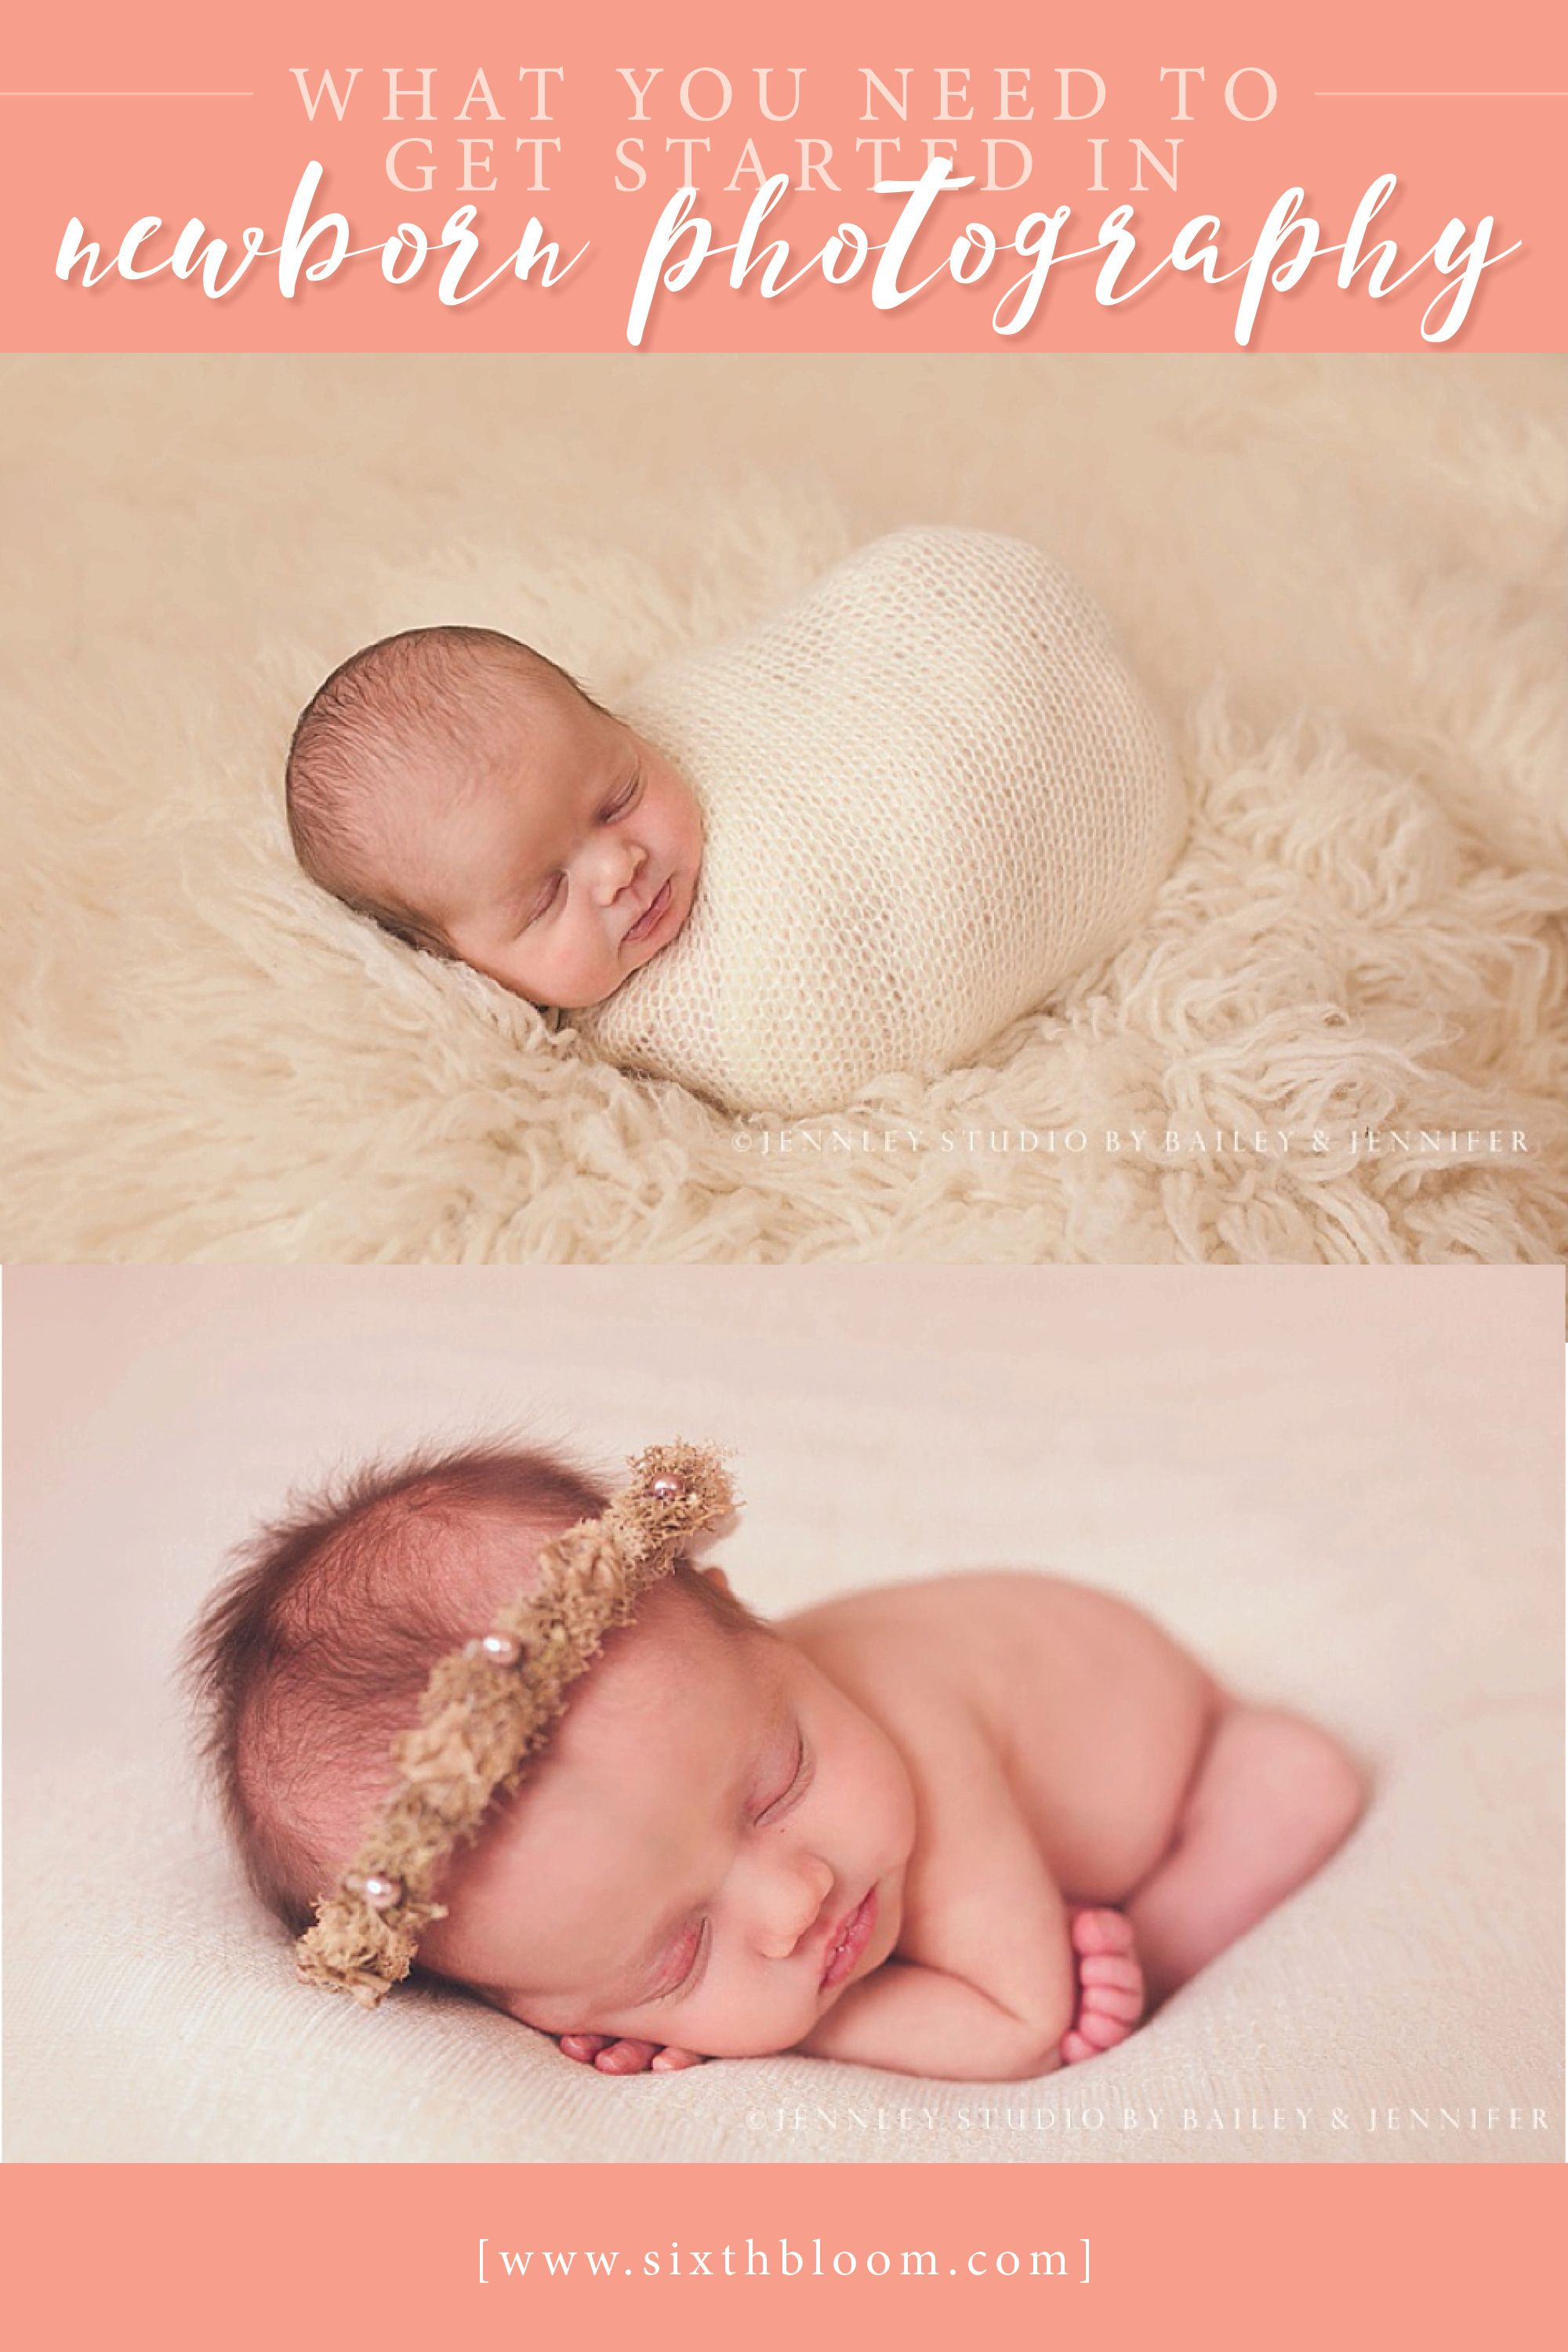 Newborn tips and tricks photographers newborn photography newborn photography business newborn photography tips tips and tutorial newborn photography